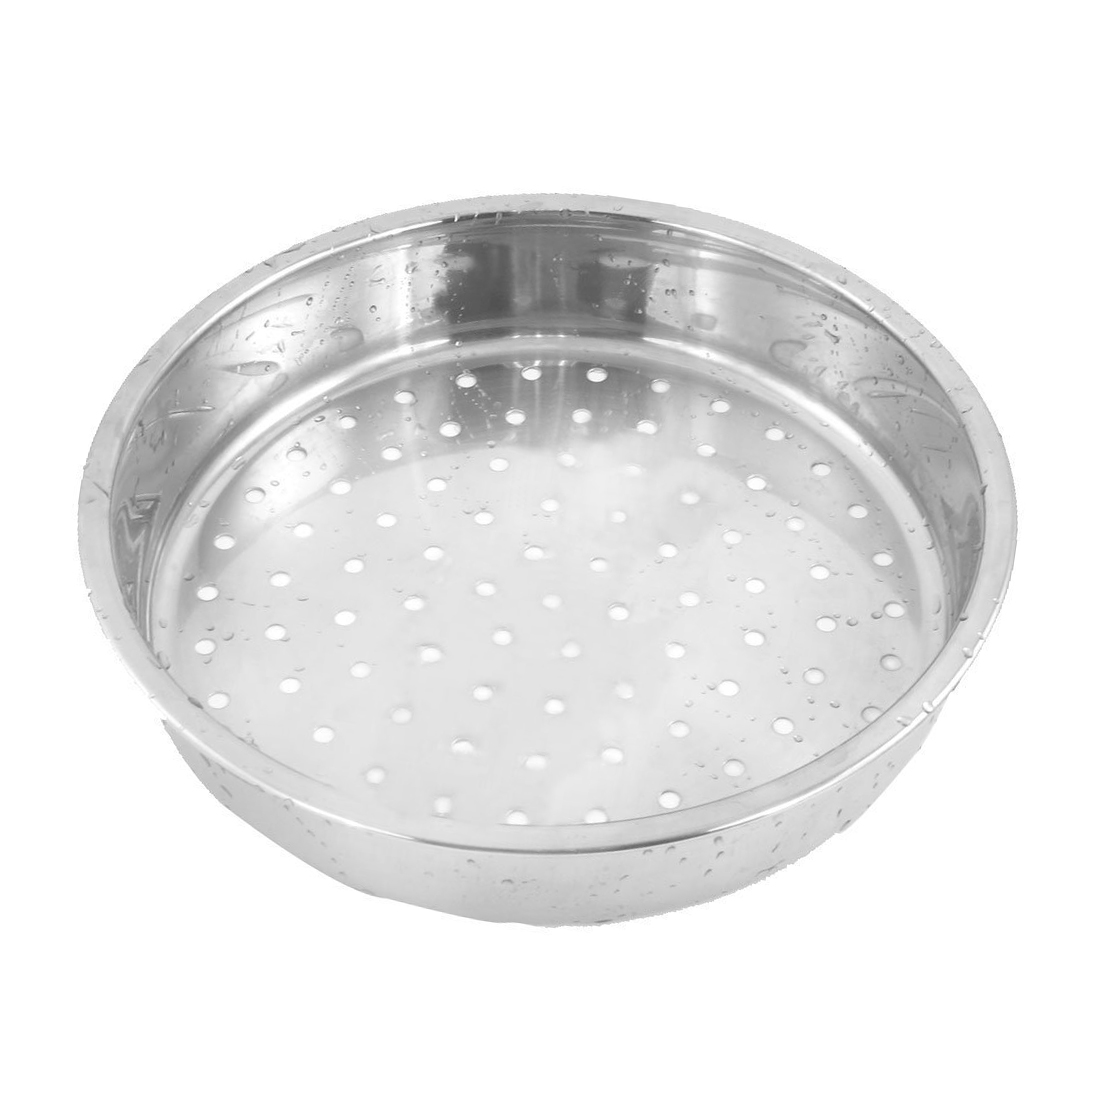 Hot Round Stainless Steel Food Cooking Steamer Rack Cookware 21cm Dia